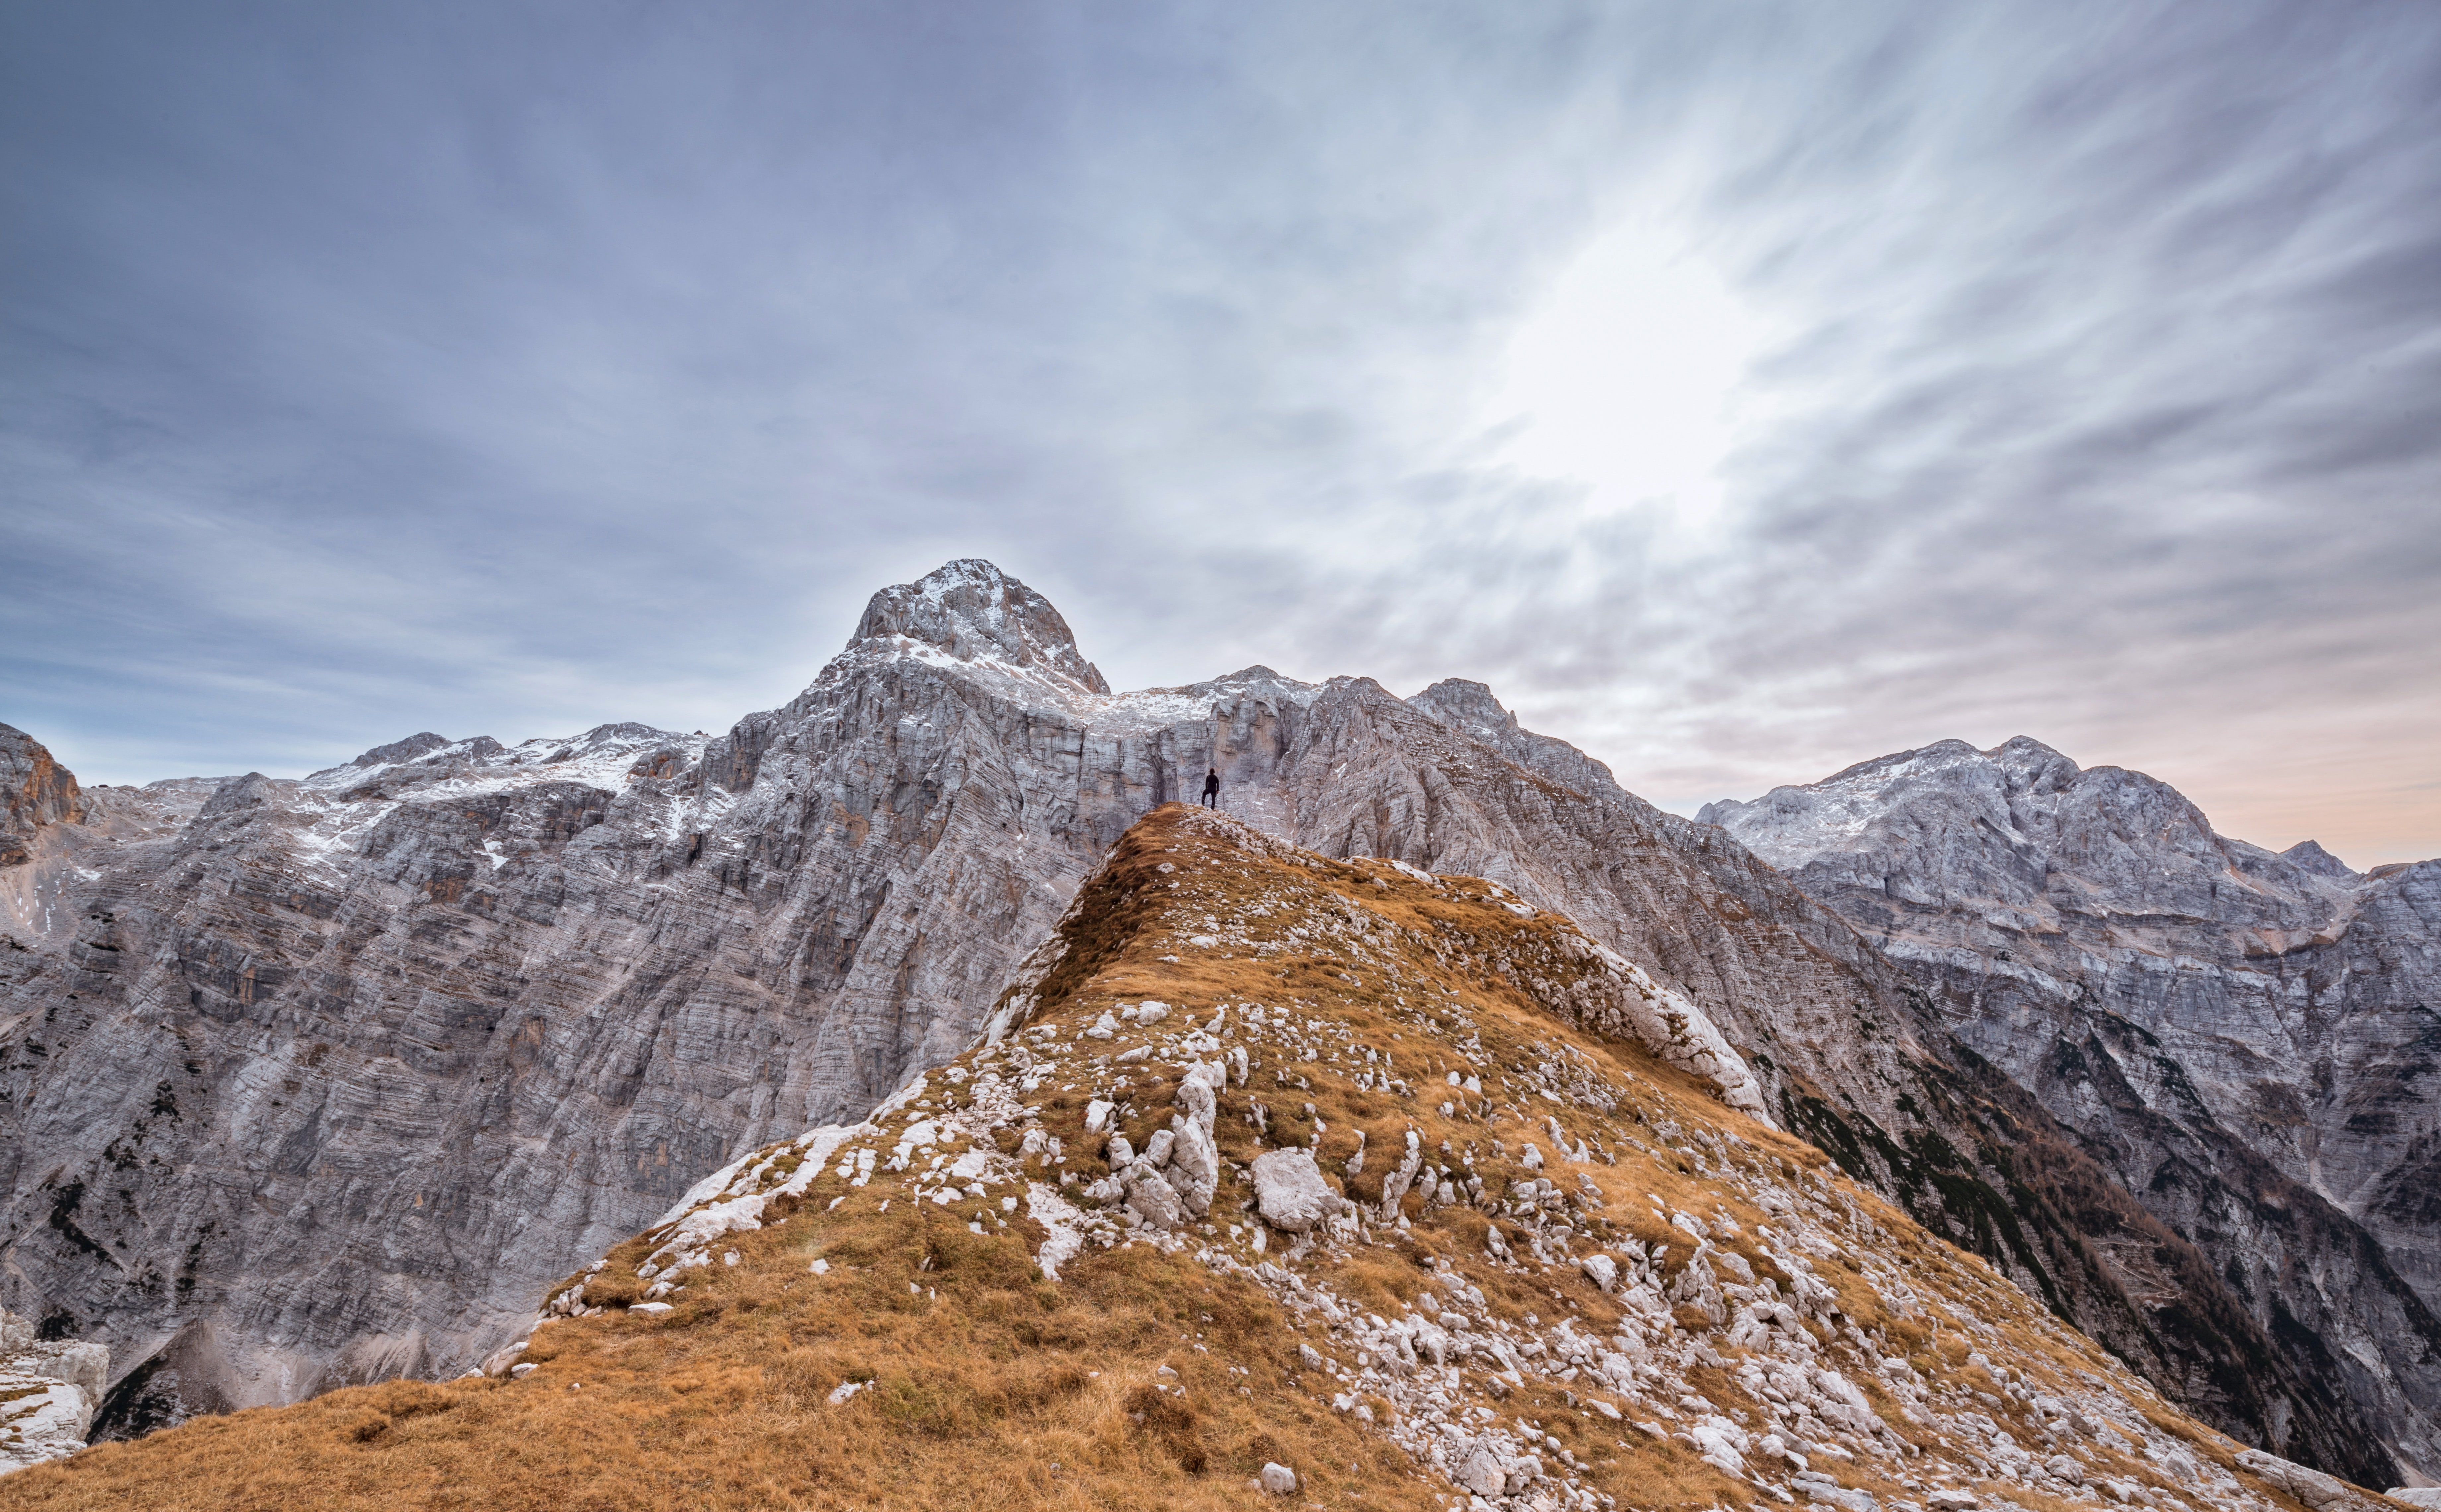 landscape photography of gray and brown mountains